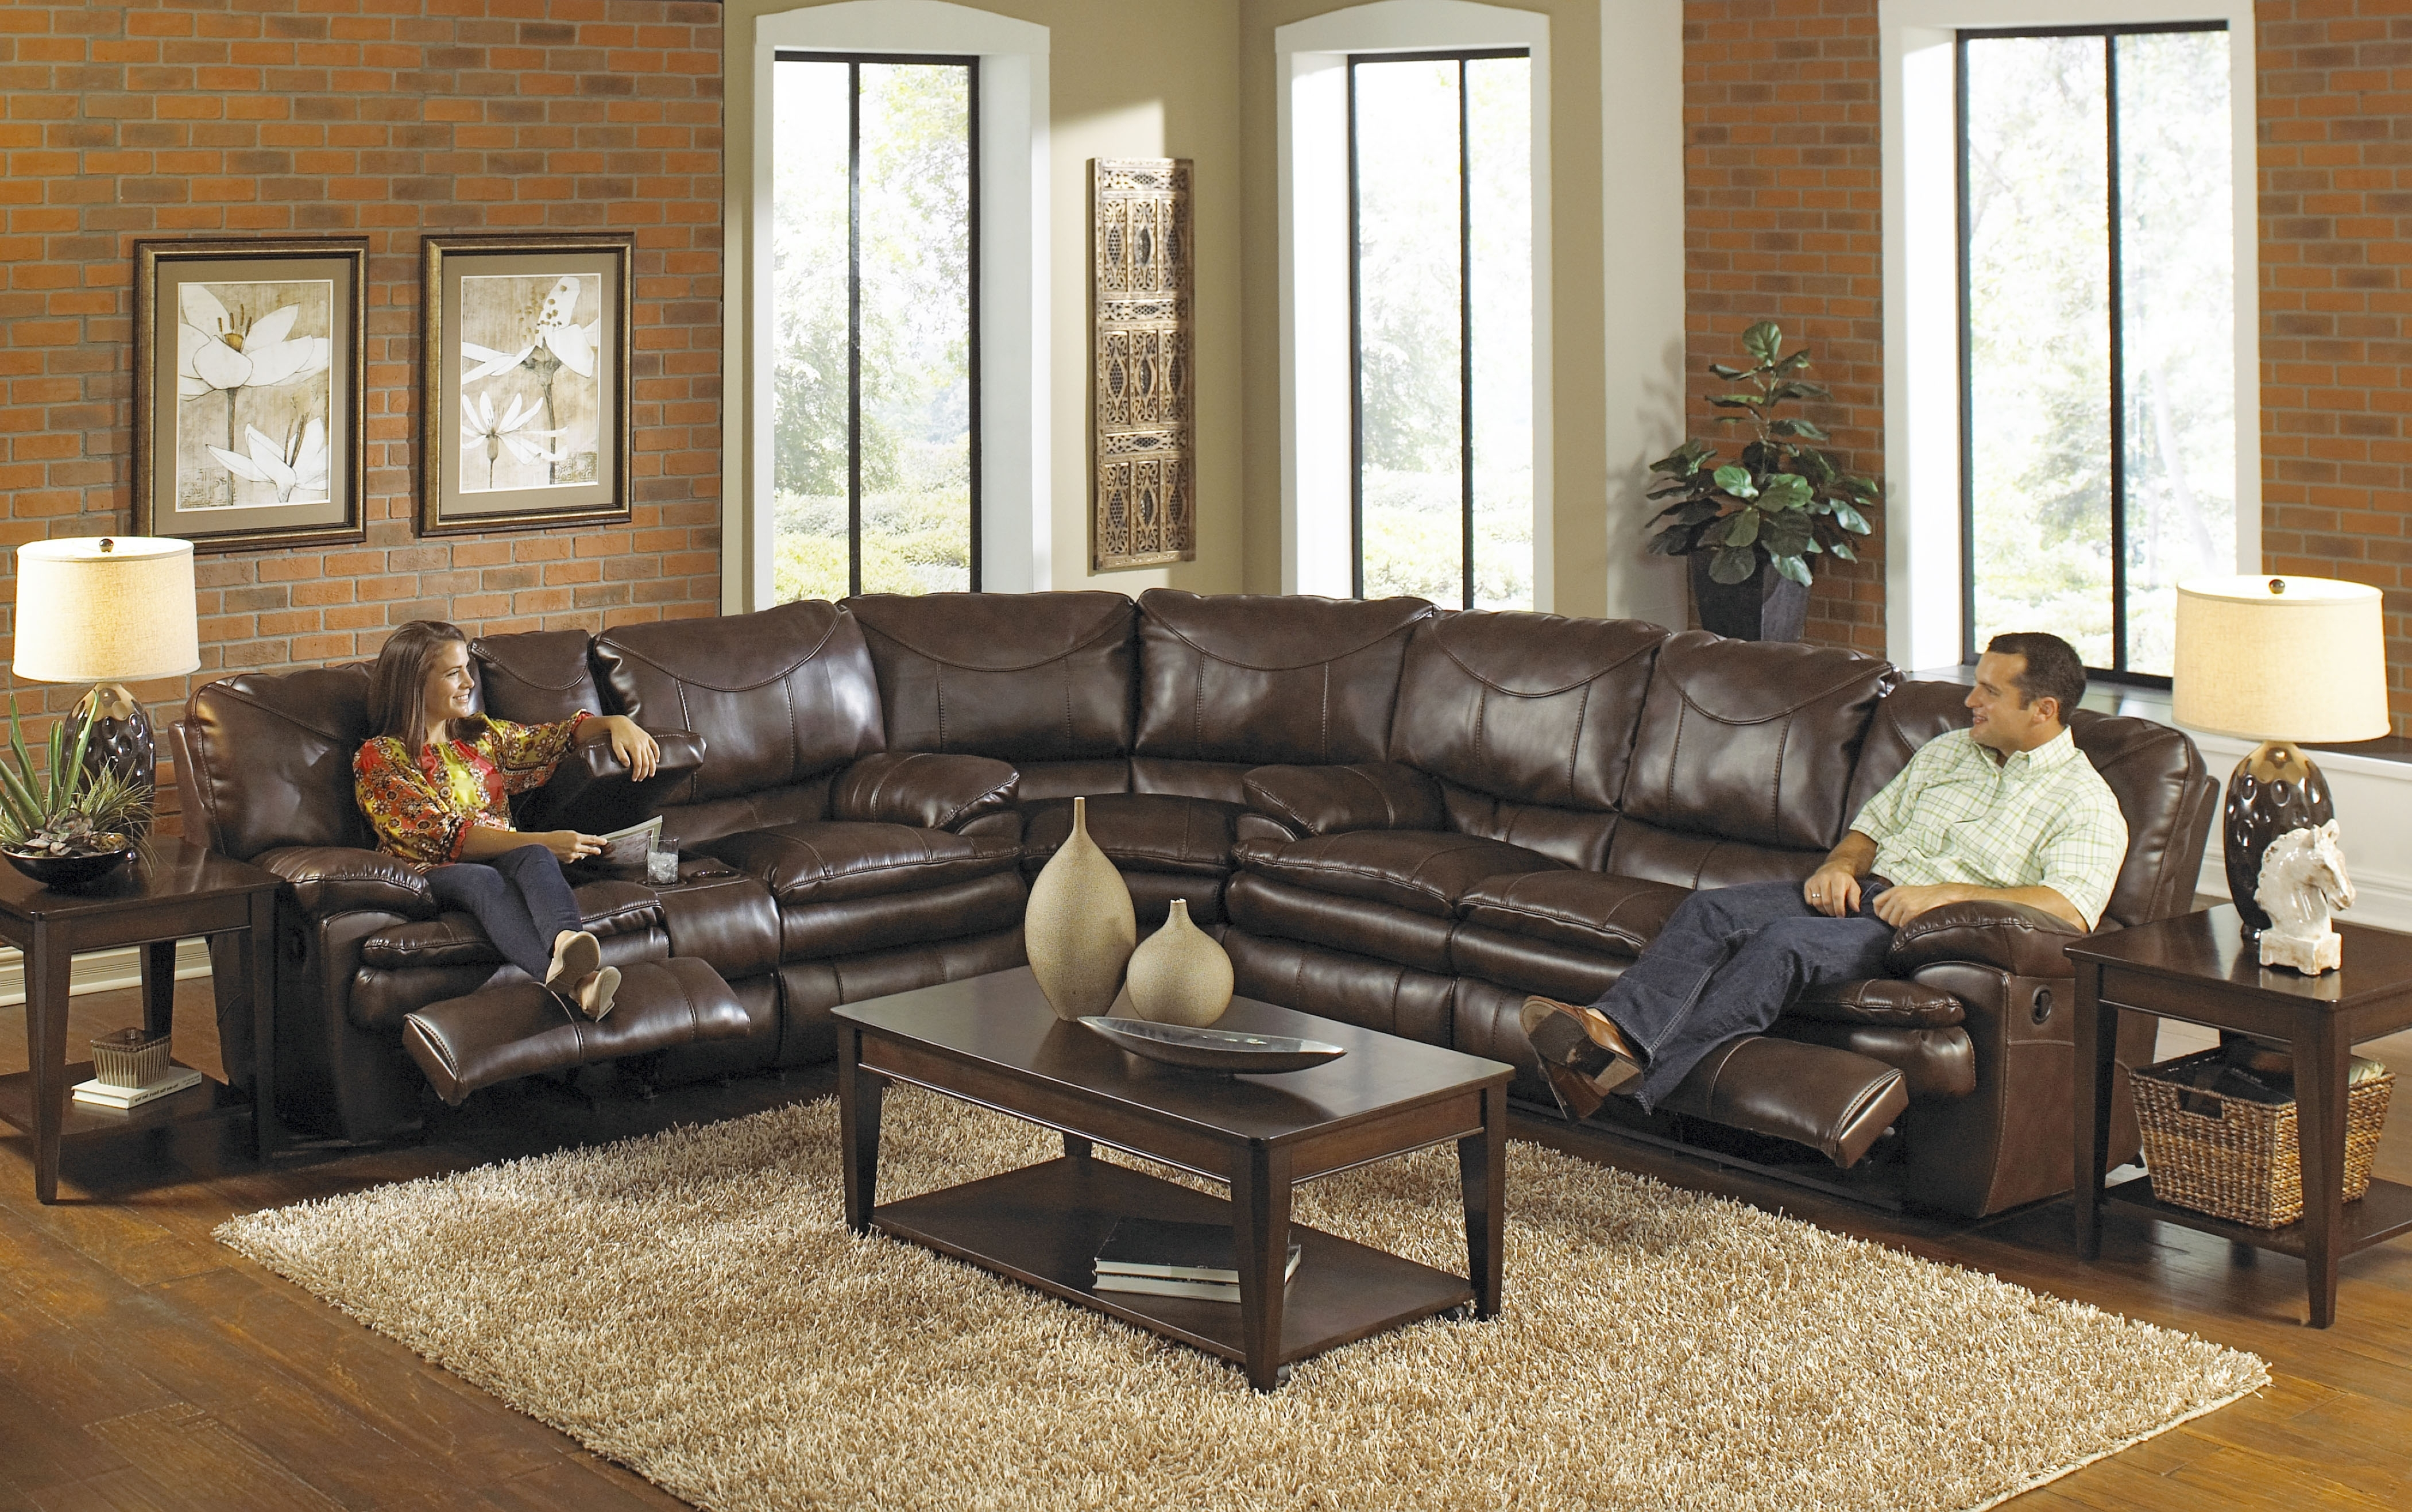 Best Leather Sectional Sofa With Recliner Photos – Liltigertoo For Most Popular Leather Sectional Sofas (View 2 of 20)